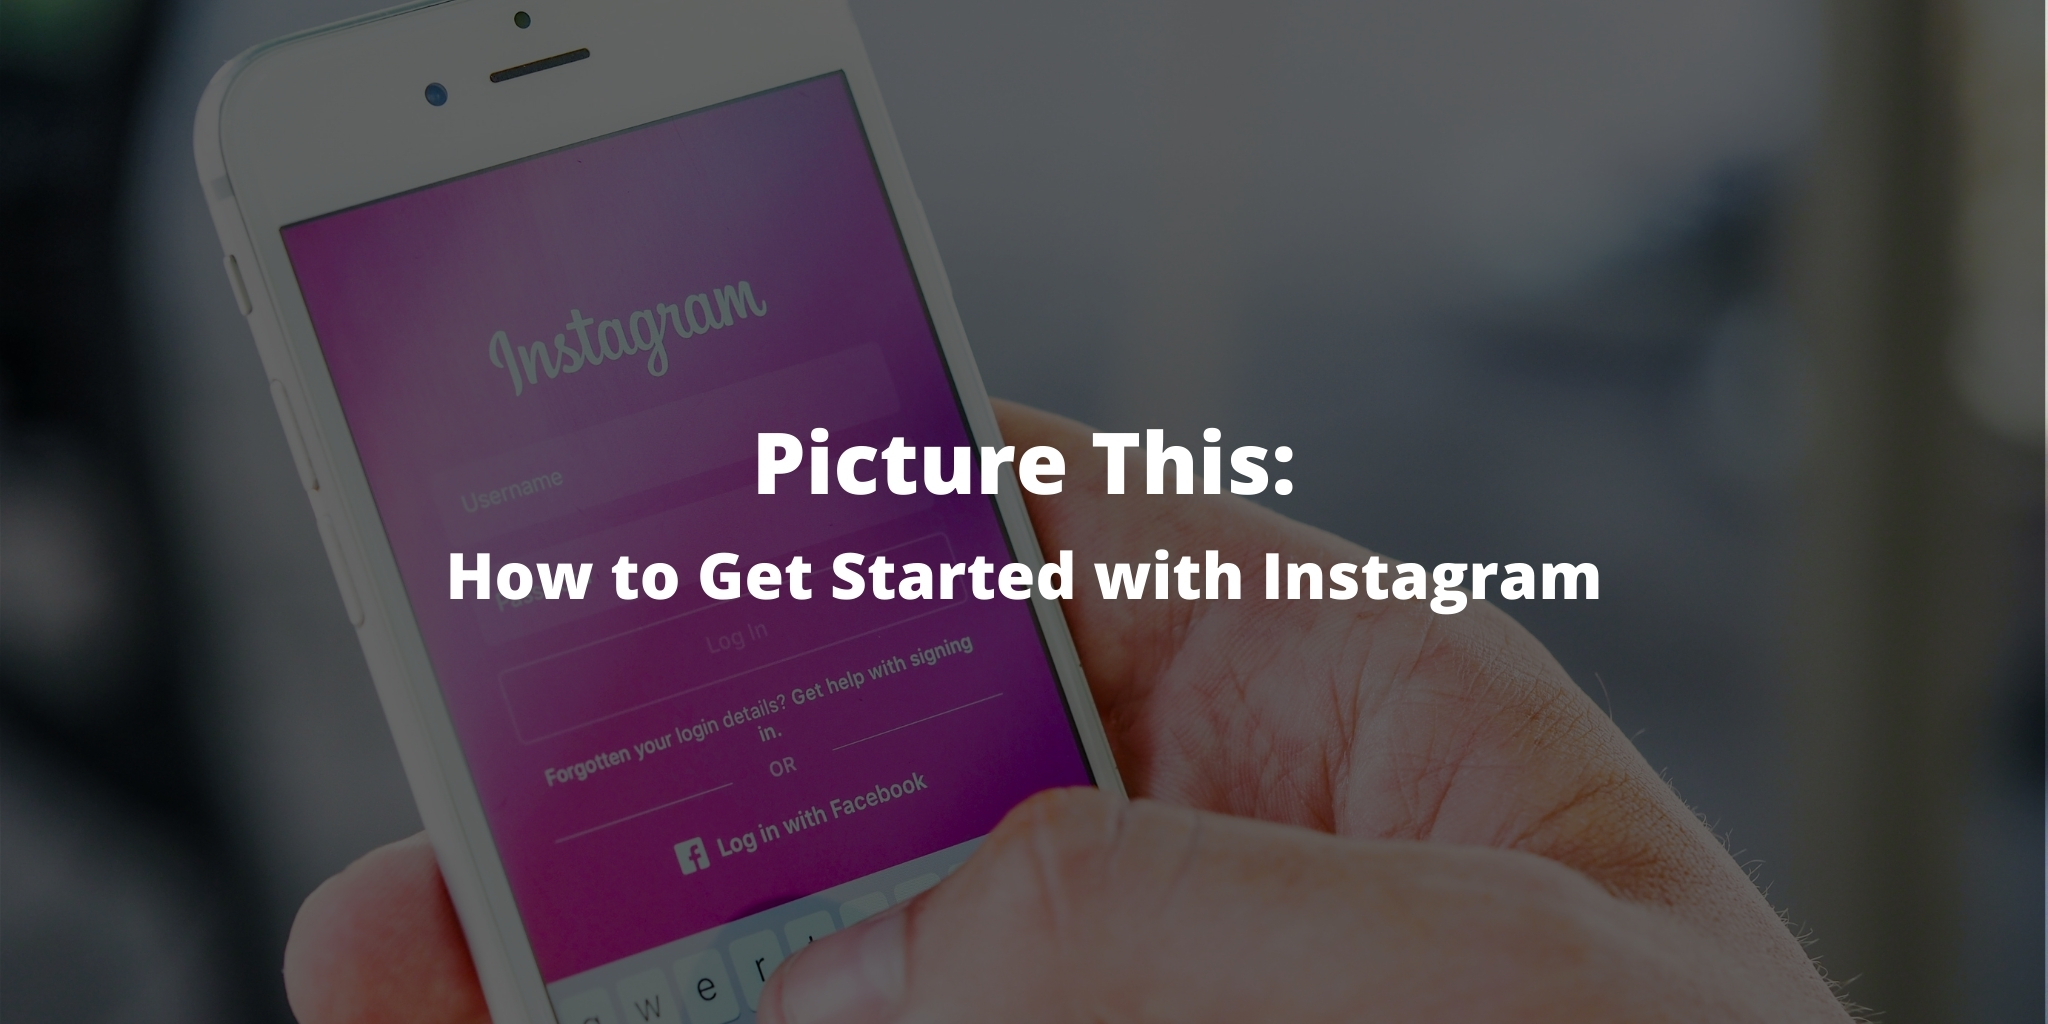 Picture This: How to Get Started with Instagram